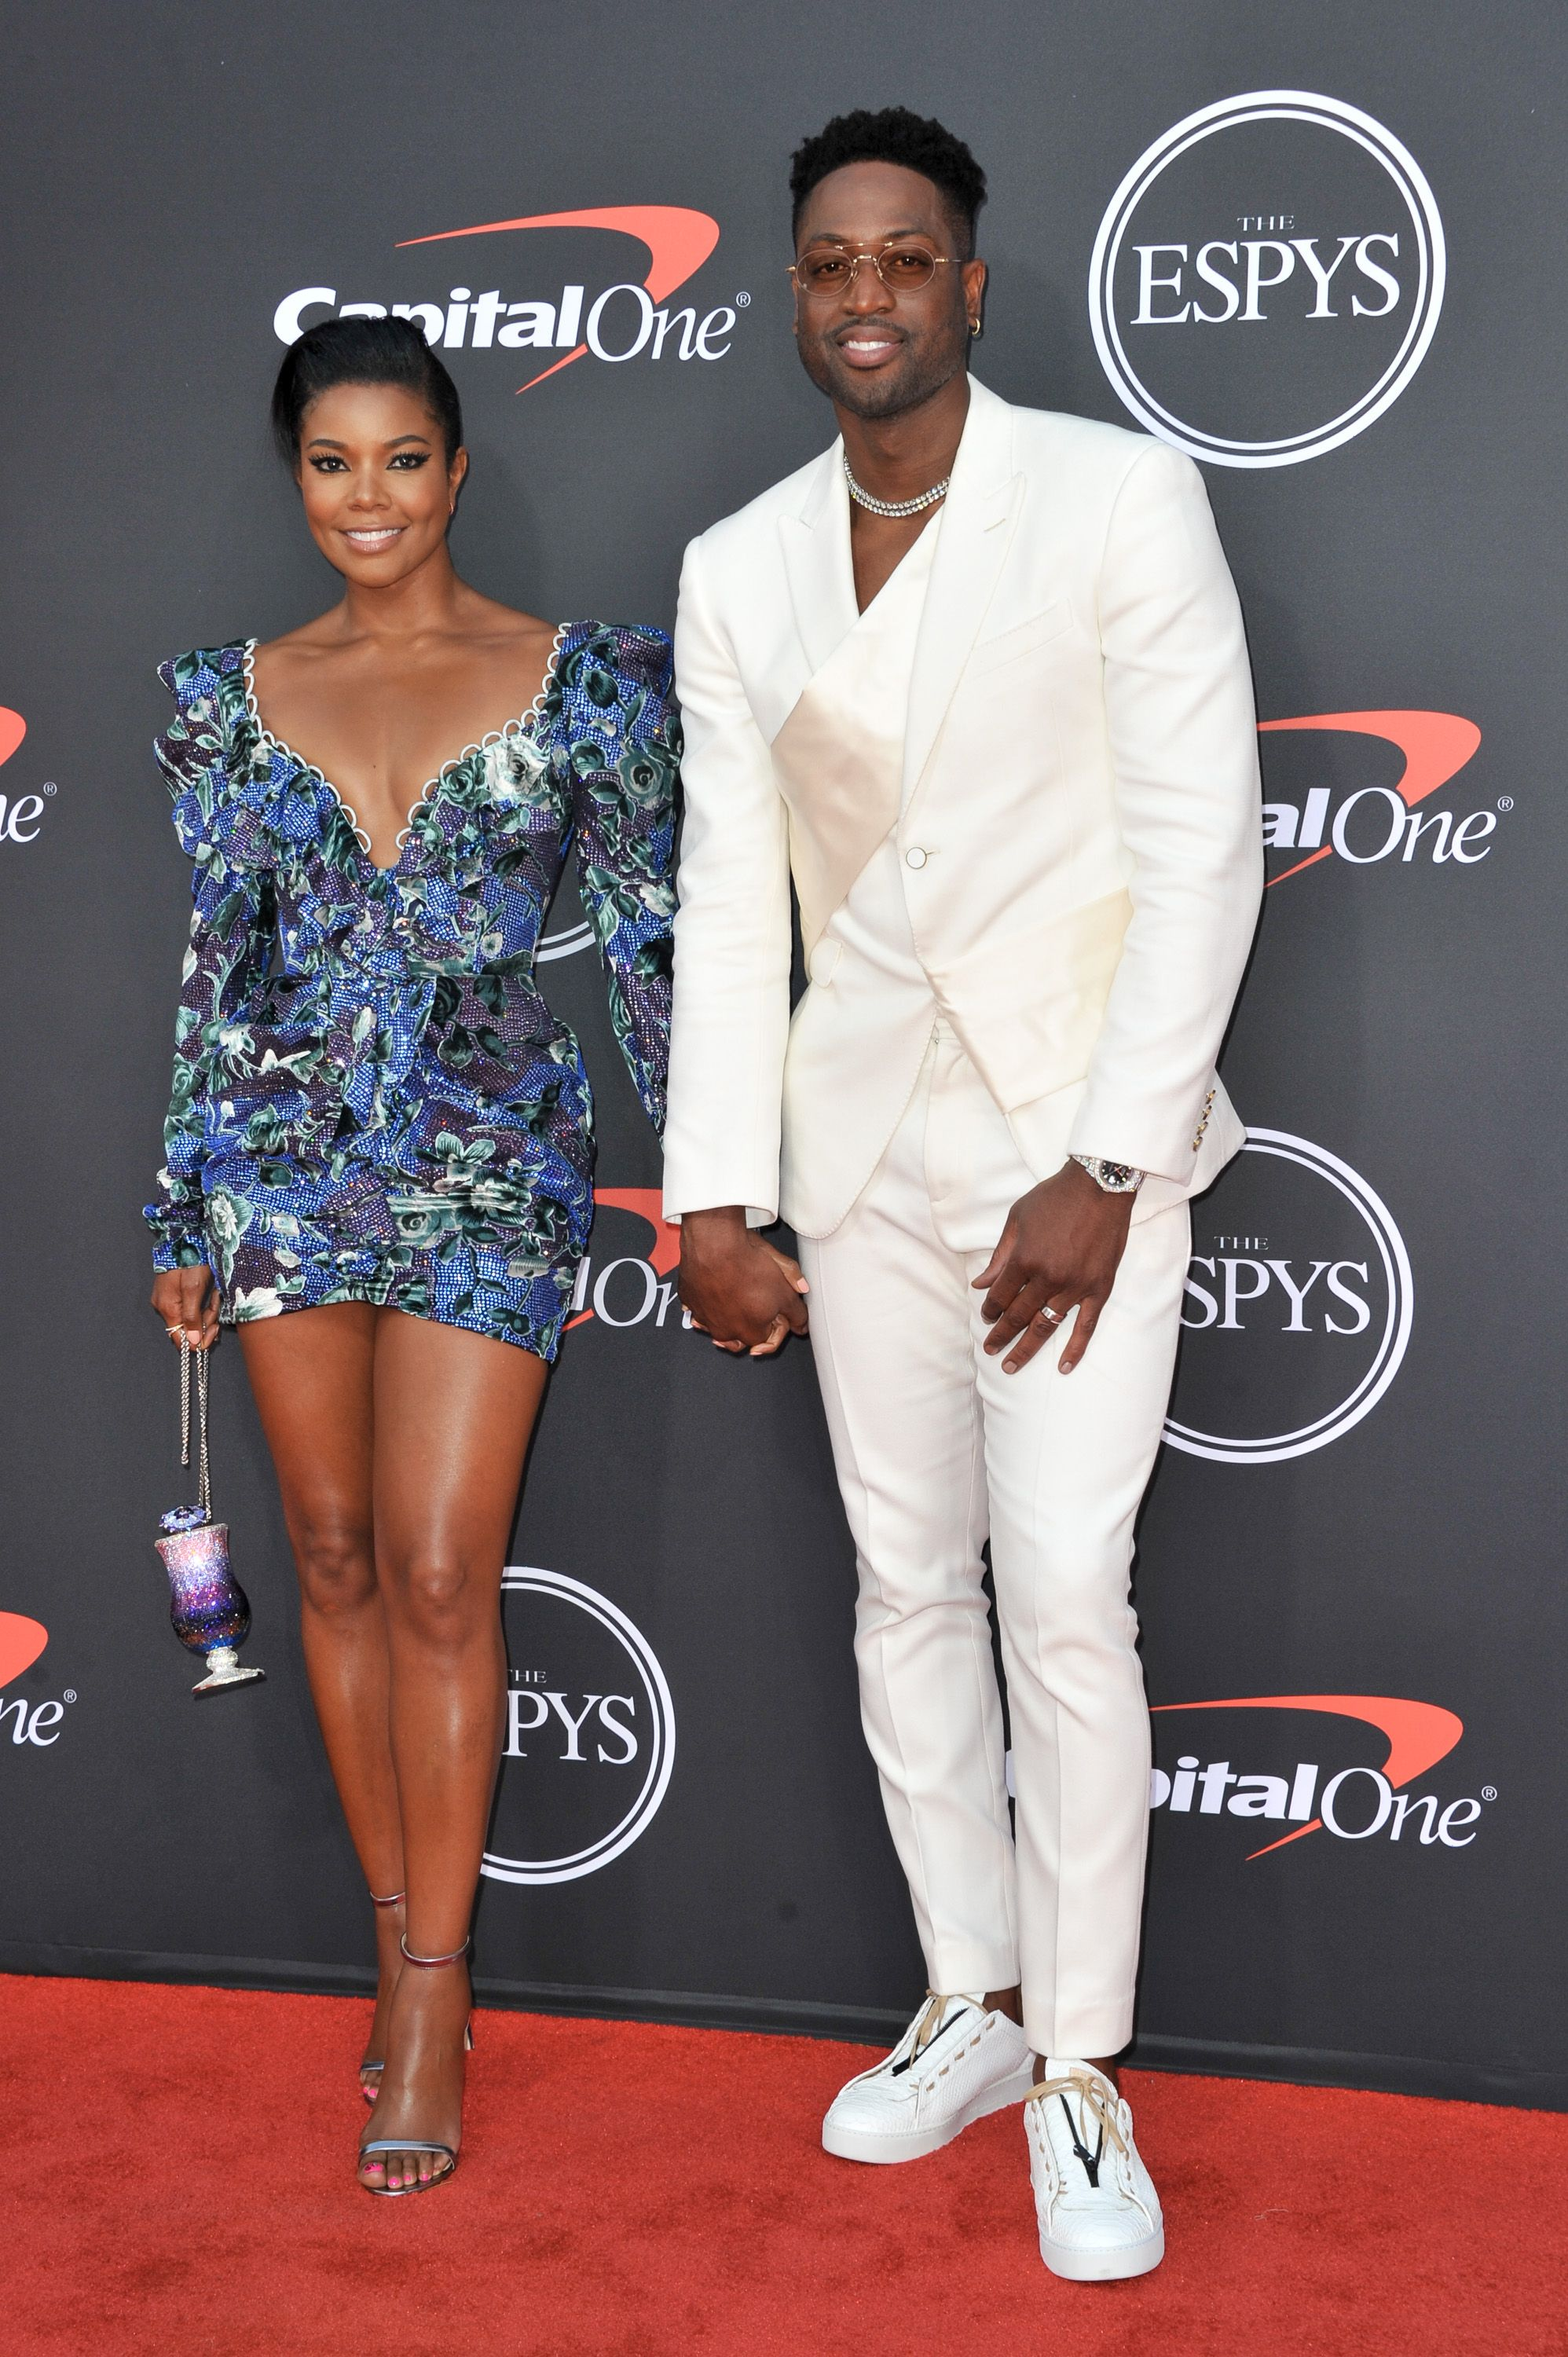 Dwyane Wade Told Gabrielle Union He Can't Wait to Marry Her Again at the ESPYs